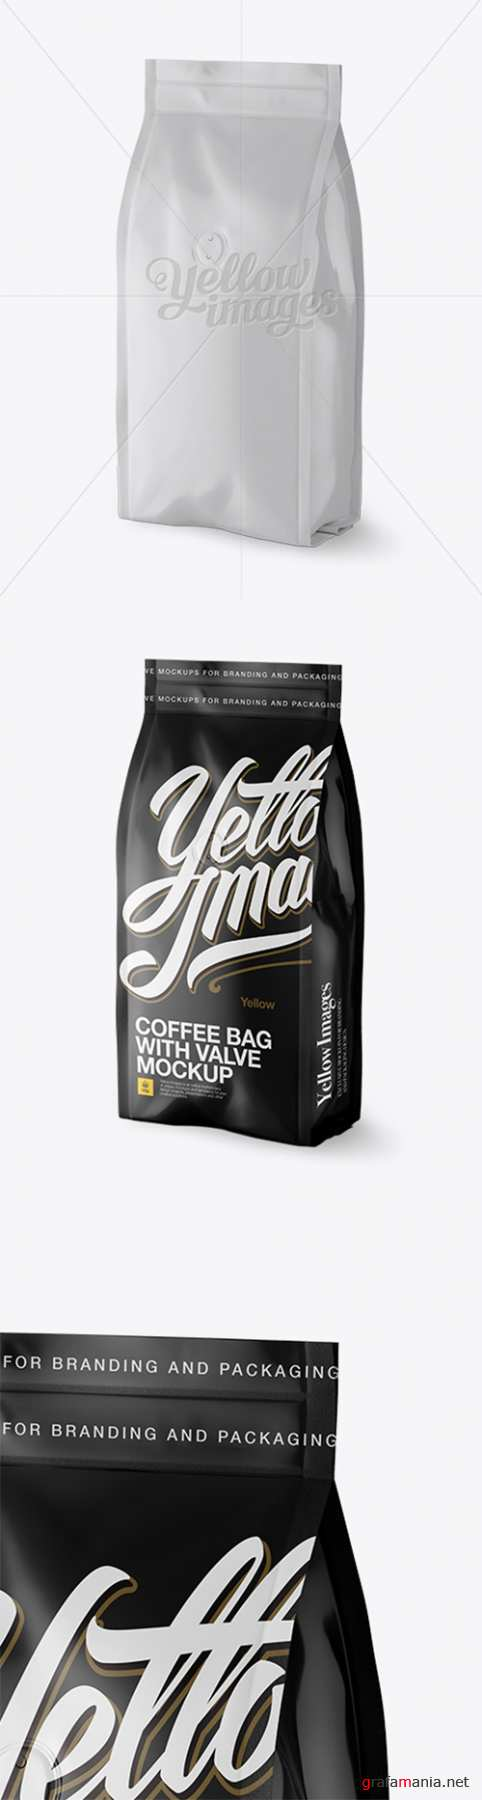 Matte Coffee Bag With Valve Mockup - Halfside View 16867